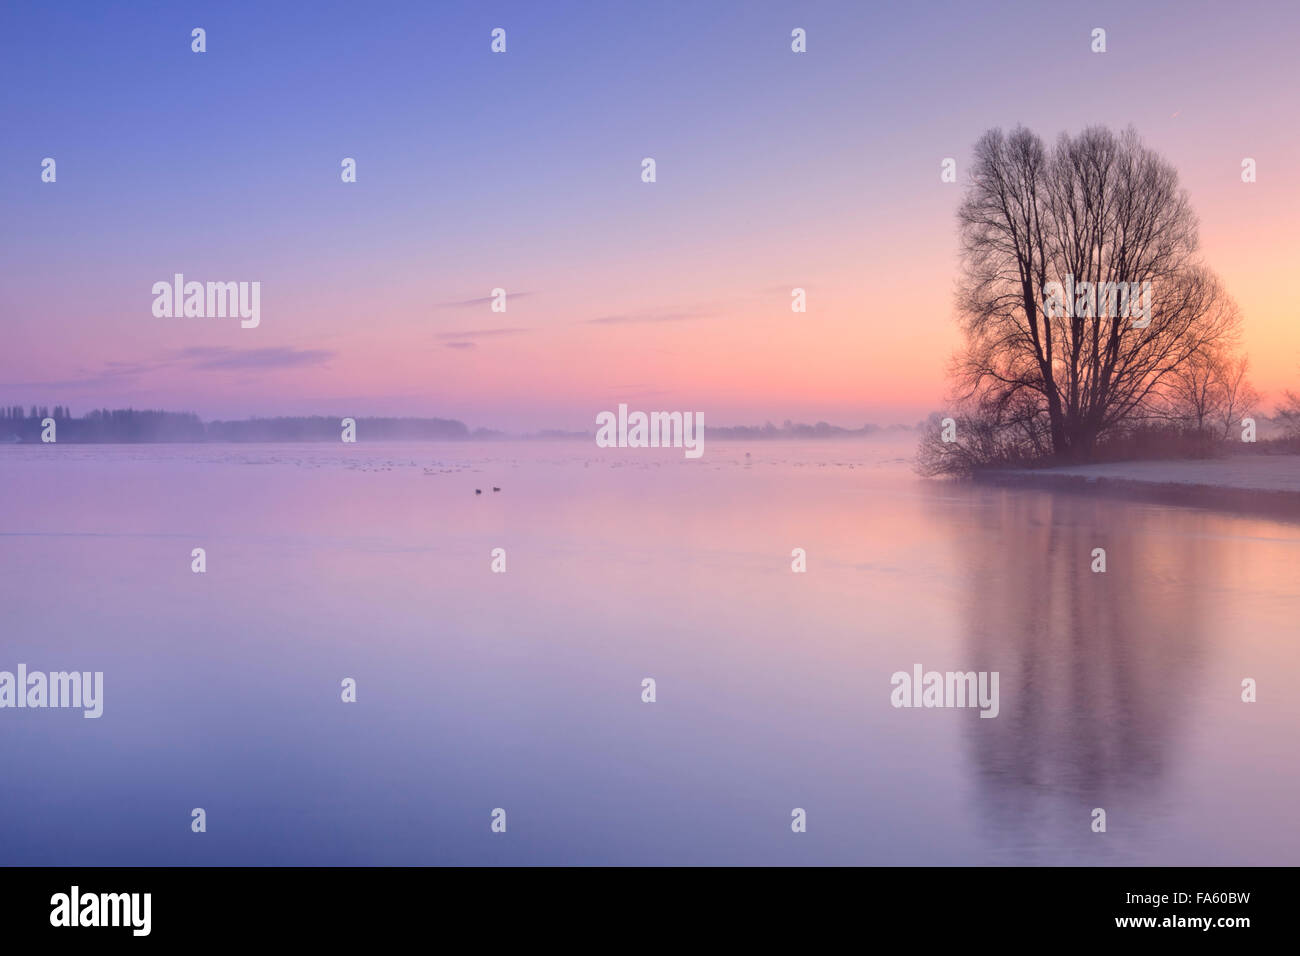 A tree on the edge of a lake, reflected in the water. Photographed on a cold winter's morning at sunrise in - Stock Image